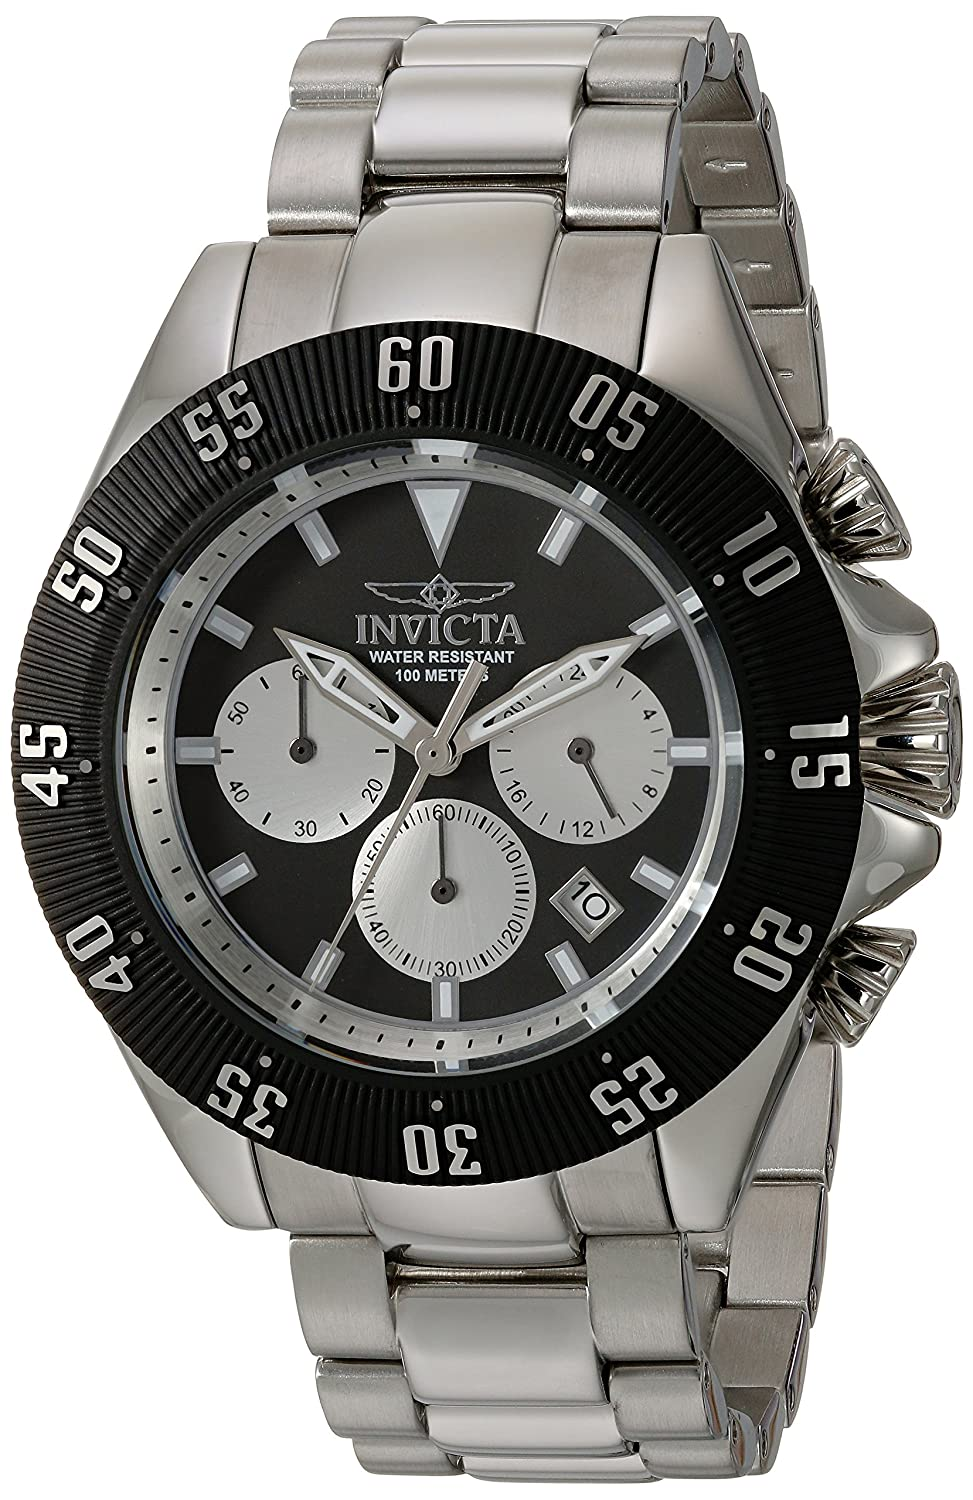 f8711daee Amazon.com: Invicta Men's Speedway Quartz Watch with Stainless-Steel Strap,  Silver, 22 (Model: 22396): Invicta: Watches